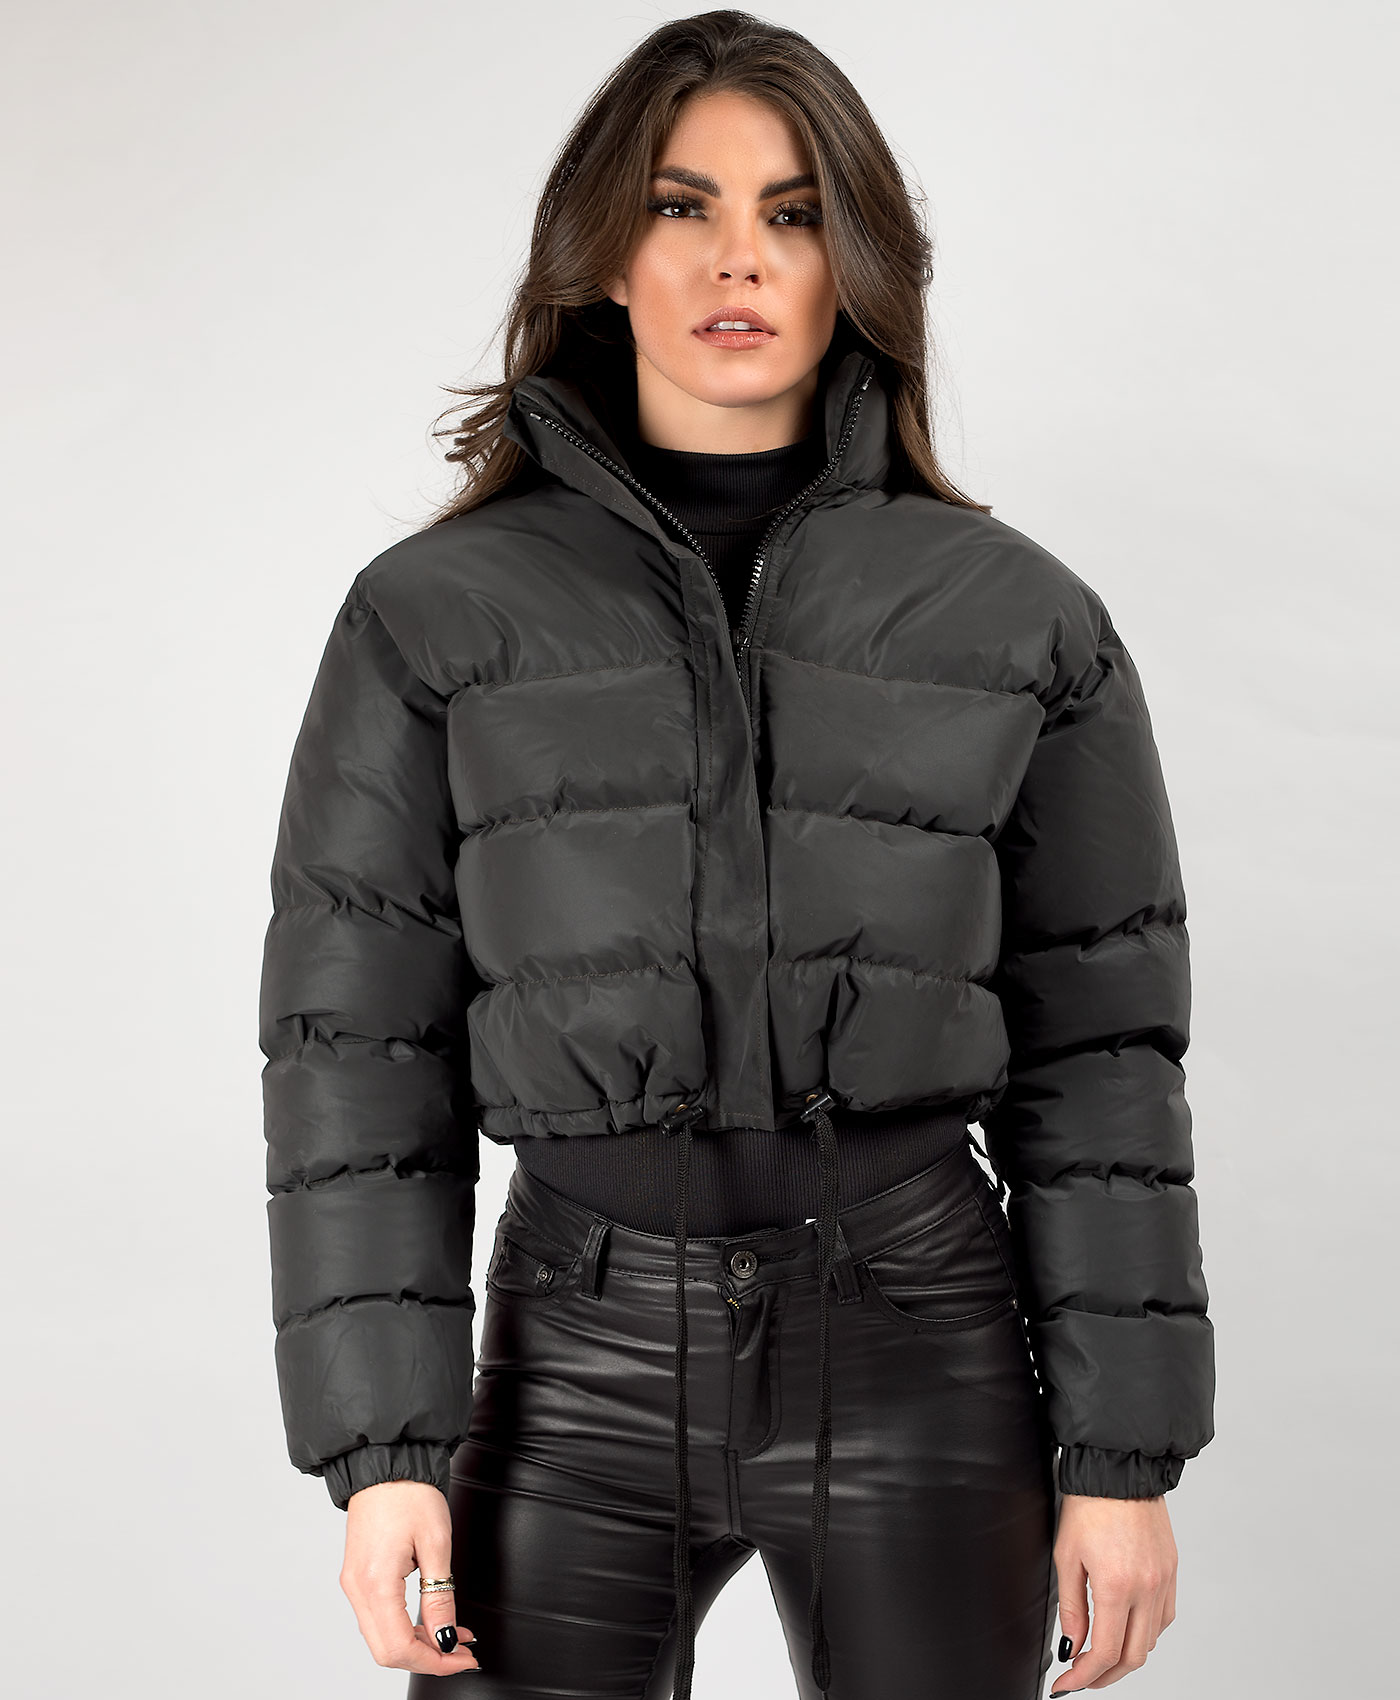 Womens-Reflective-Hi-Visibility-Thick-Puffer-Padded-Quilted-Cropped-Jacket-Coat Indexbild 15